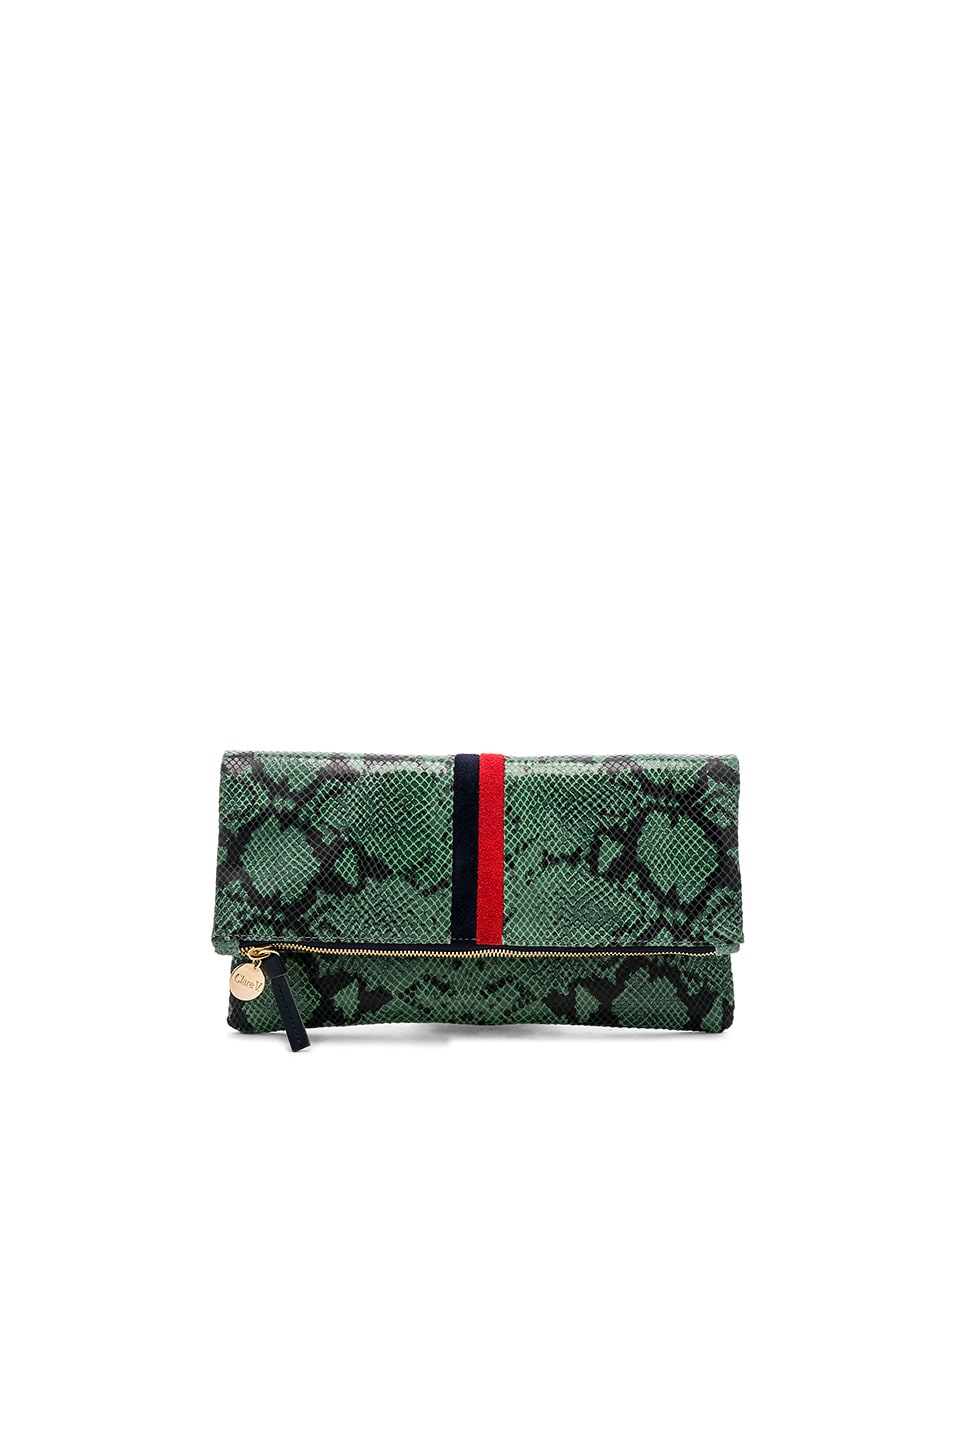 Clare V. Foldover Clutch in Green Snake with Navy & Red